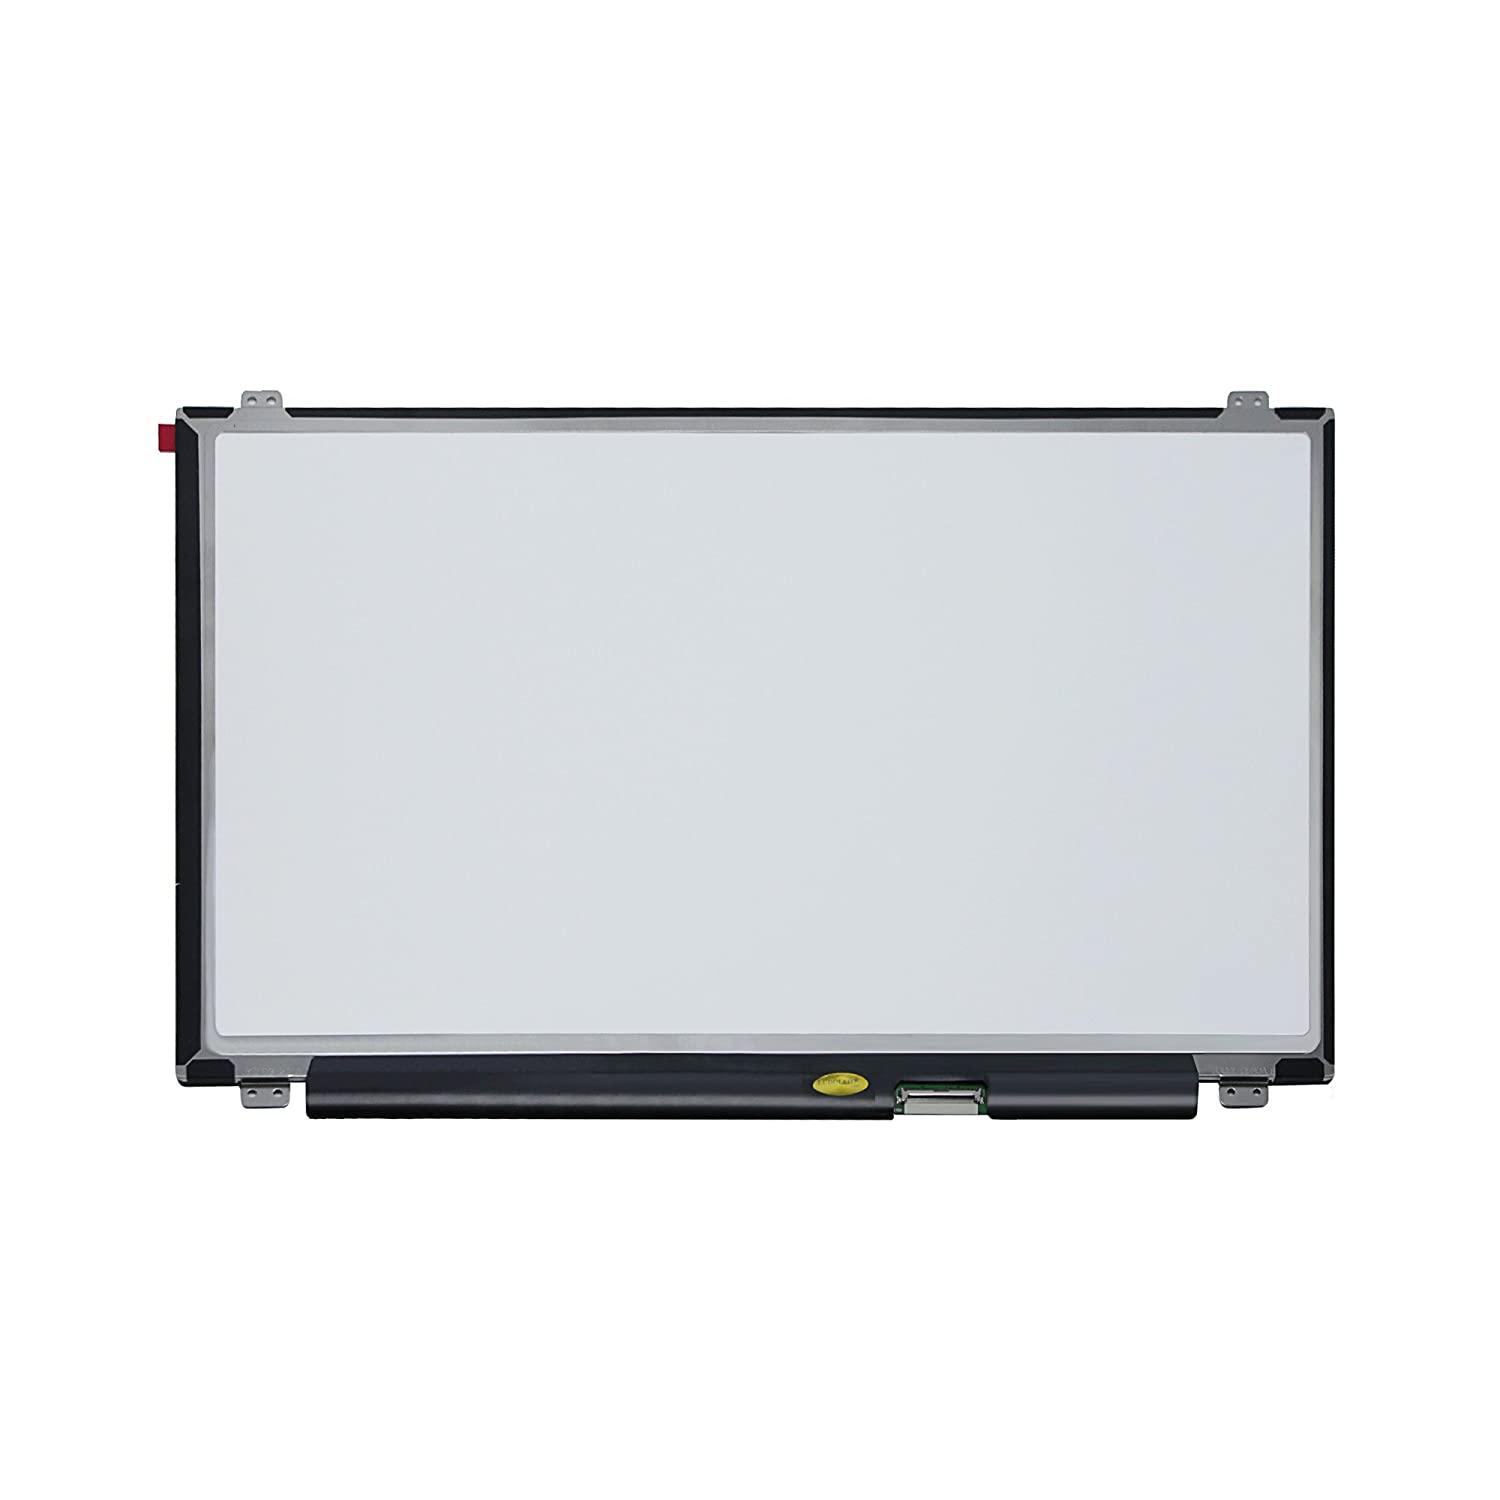 LCDOLED Compatible 15.6 inch FullHD 1080P LED LCD Display Touch Screen Digitizer Assembly Replacement for Dell Inspiron 15 5567 i5567 P66F P66F001